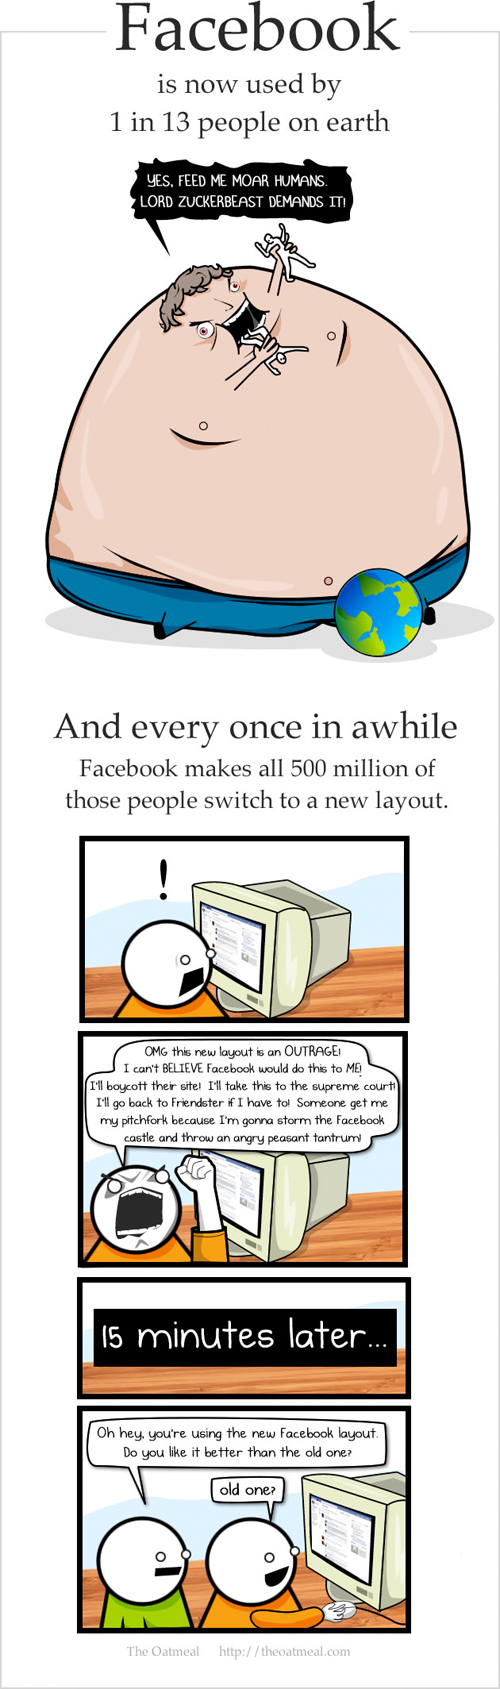 Estado de la Web (The Oatmeal)